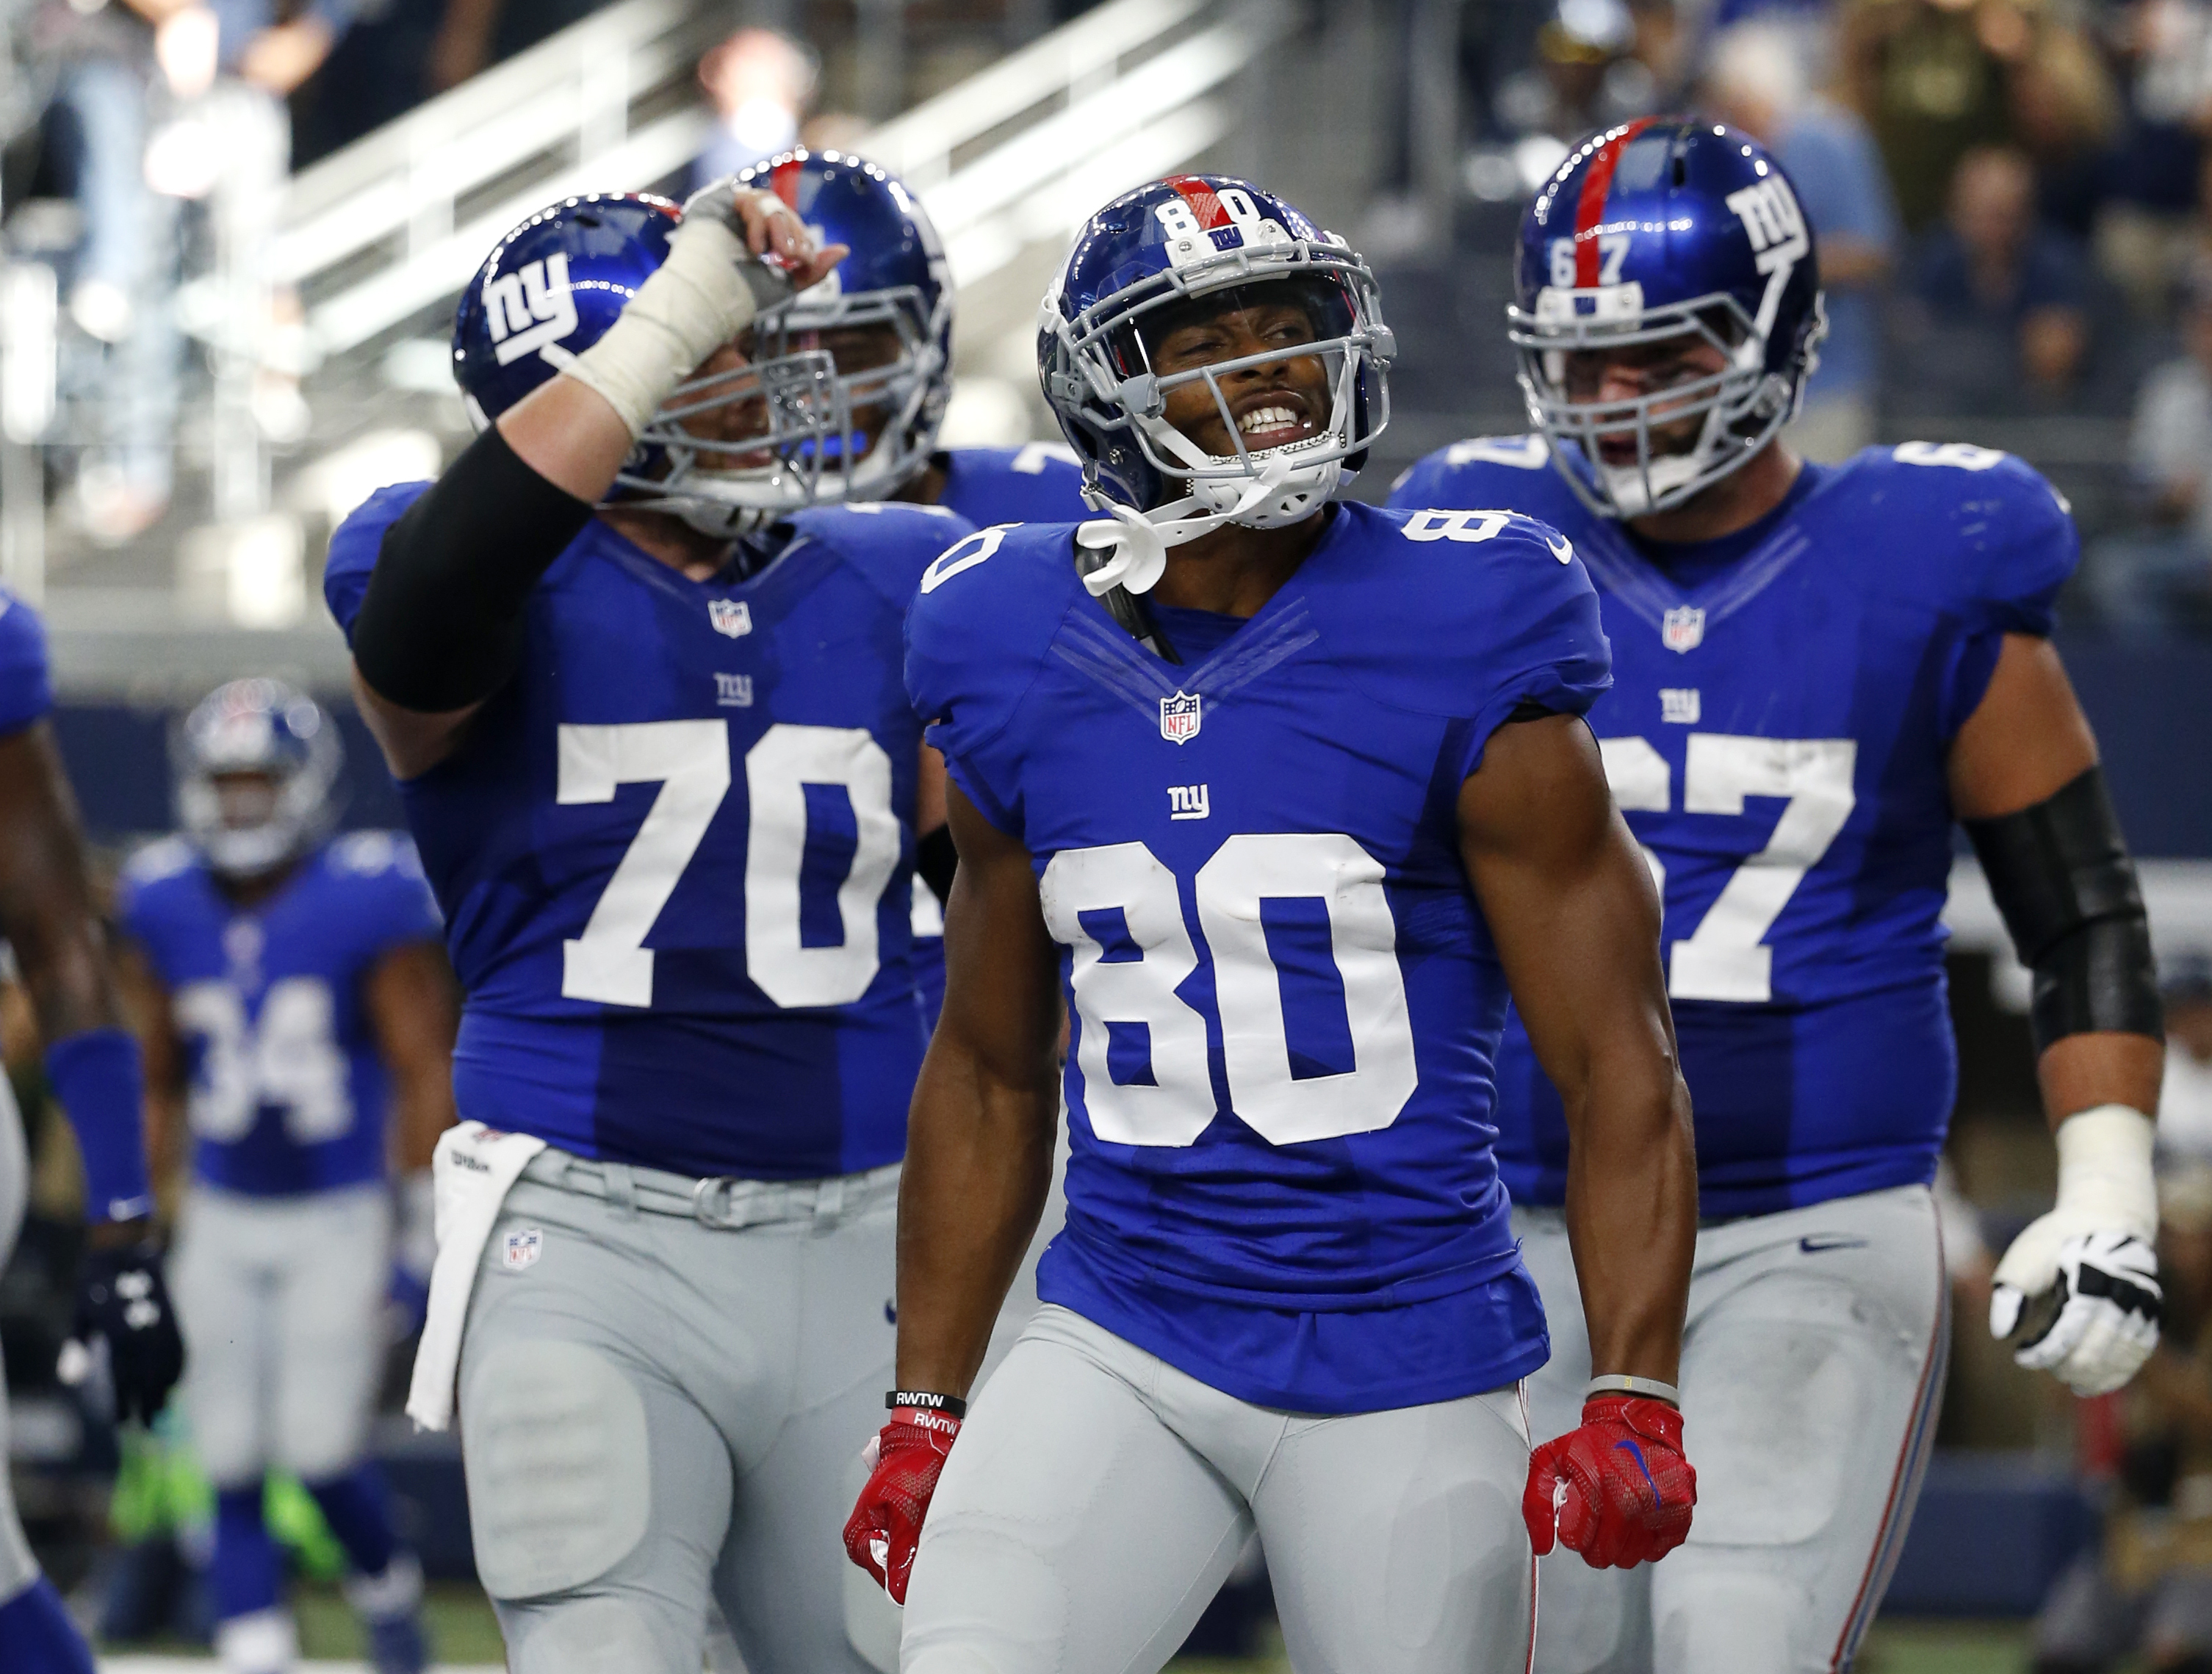 New York Giants center Weston Richburg (70), Victor Cruz (80) and Justin Pugh (67) celebrate a touchdown catch by Victor Cruz (80) in the second half of an NFL football game against the Dallas Cowboys on Sunday Sept. 11, 2016, in Arlington, Texas. (AP Pho